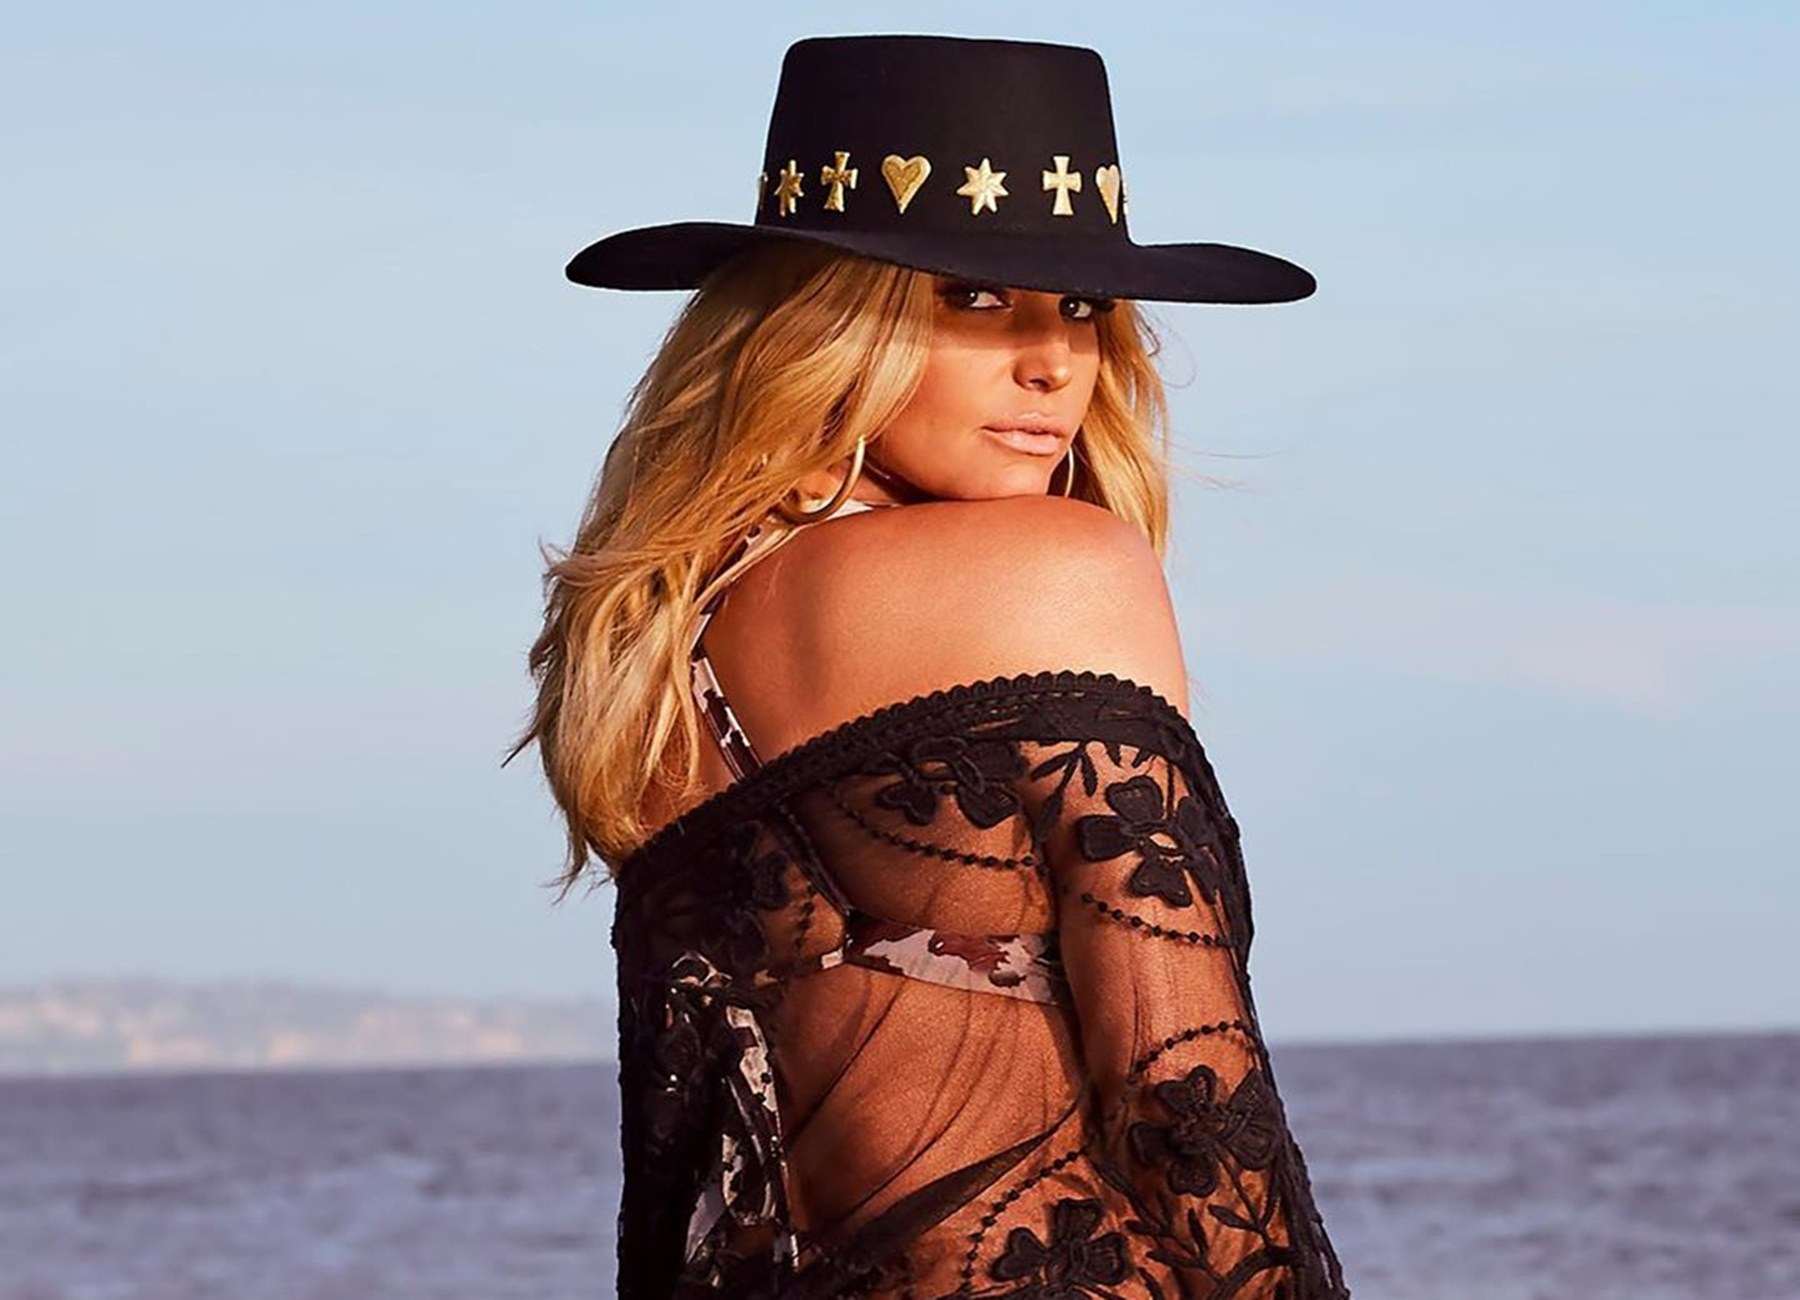 jessica-simpson-drops-pants-requirement-for-bodysuit-photo-from-quarantine-date